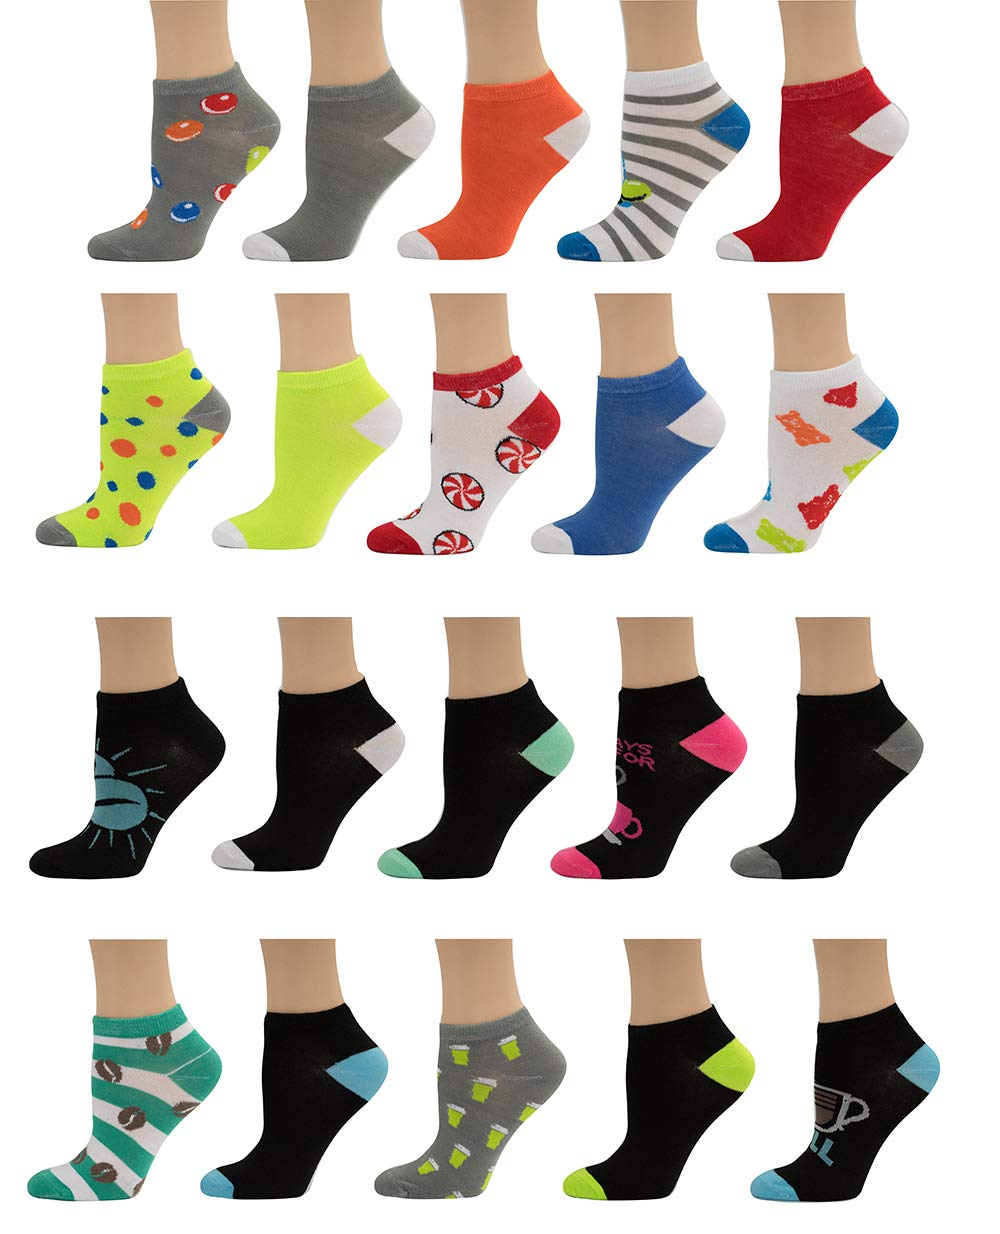 """Limited Time Offer! Women's Low-cut Socks""""20 Pair"""" (10 Pack + 10″Free"""" Pair)"""